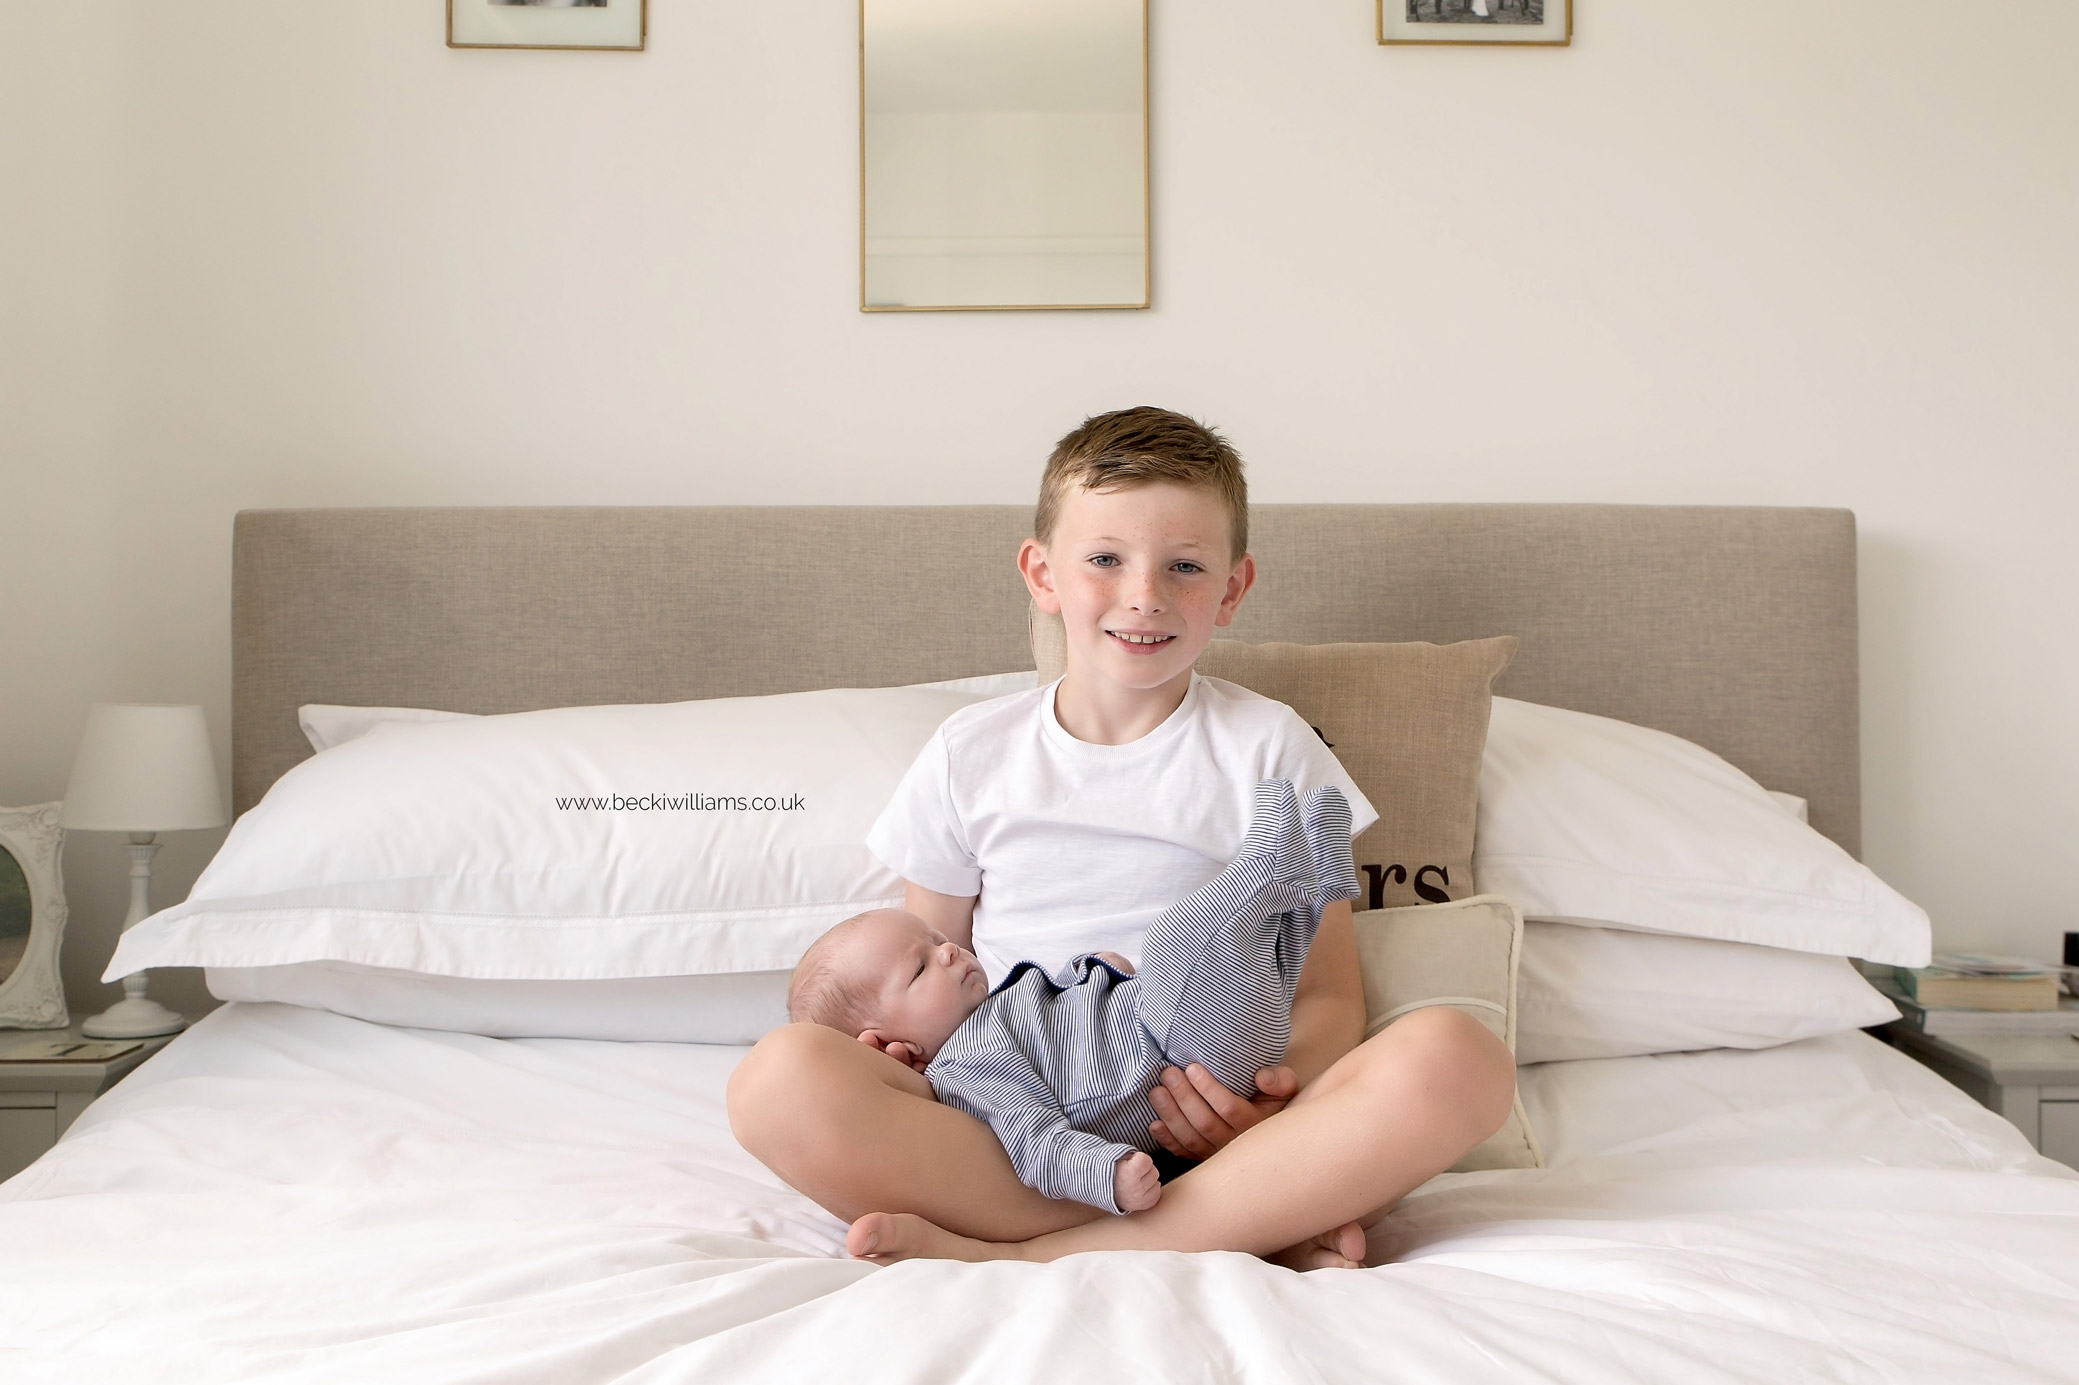 Big brother holding his newborn baby brother at their lifestyle newborn photo shoot in Hertfordshire